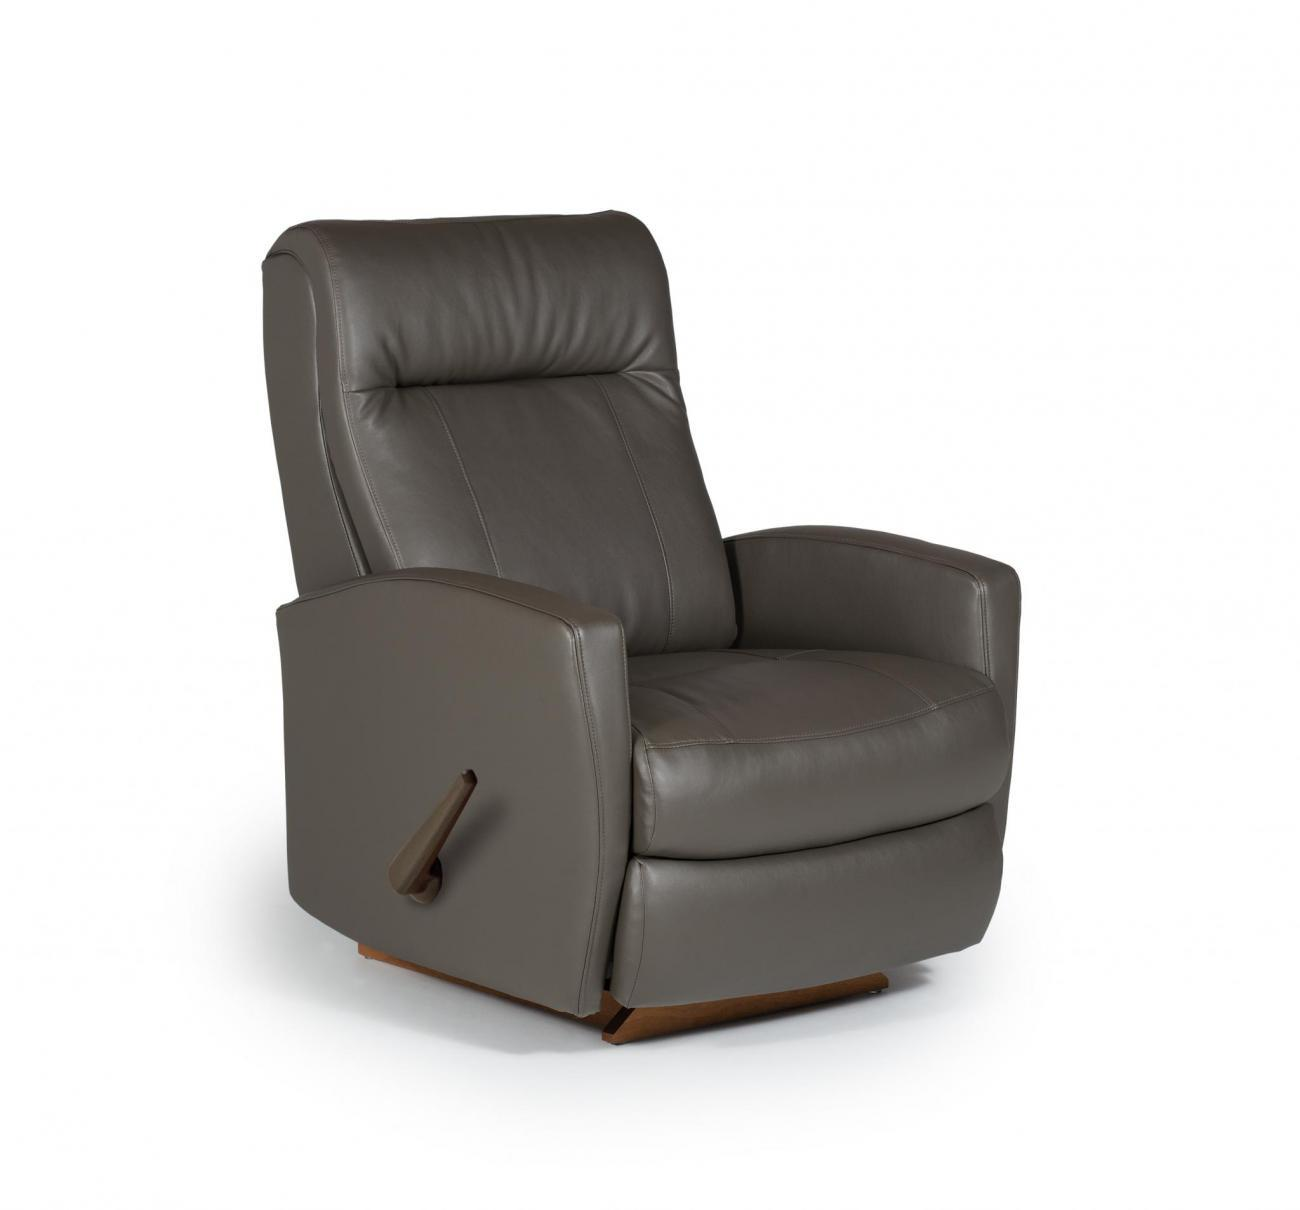 Leather Furniture By Best Home Furnishings